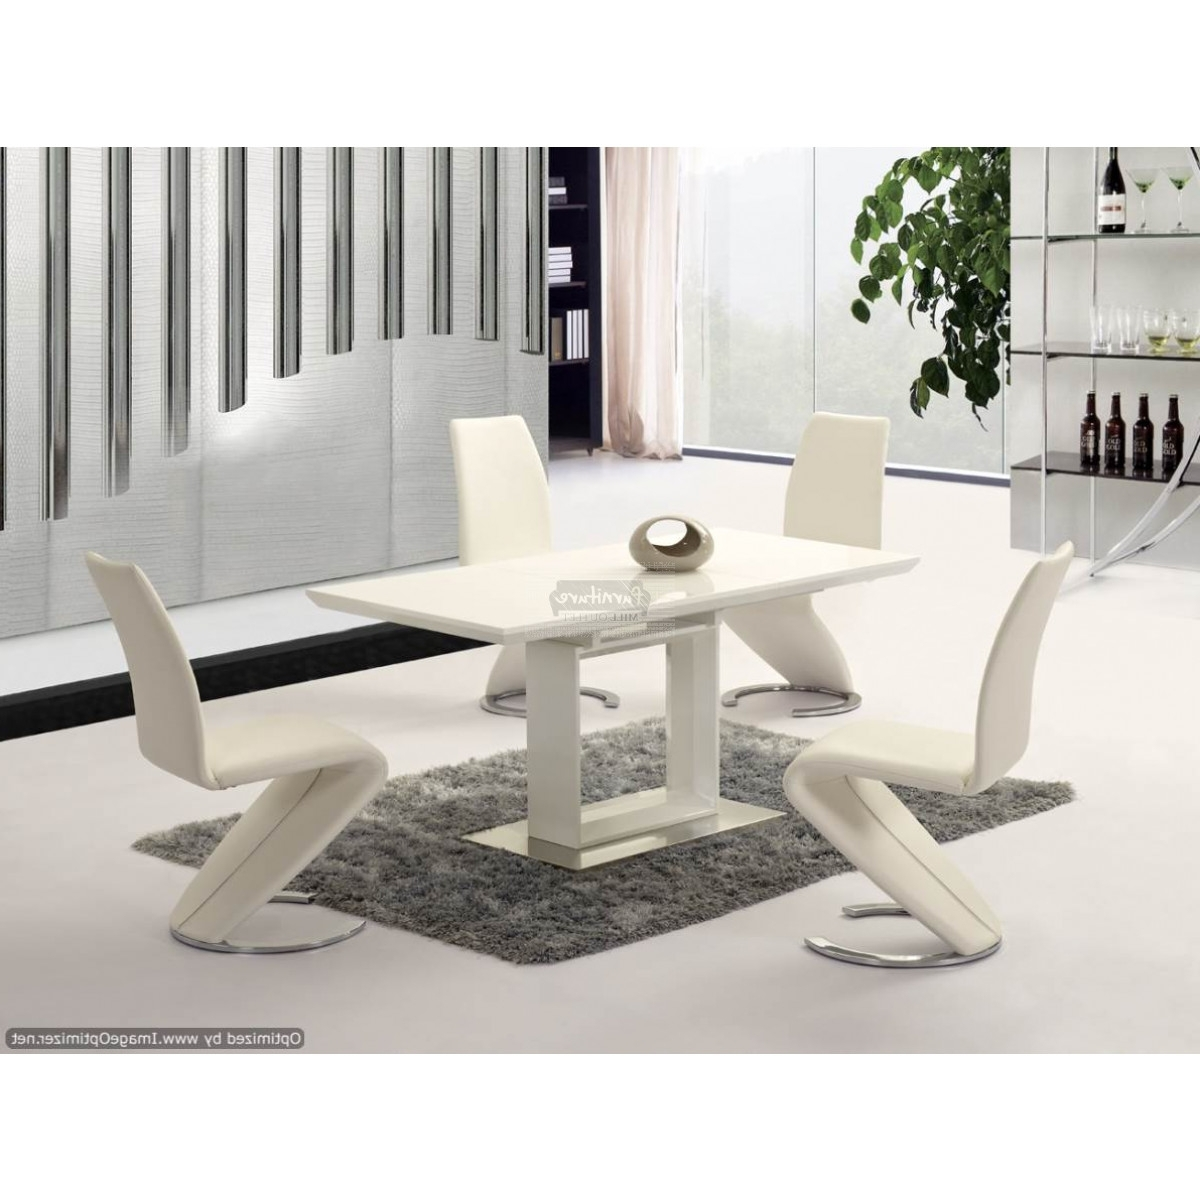 Recent Space White High Gloss Extending Dining Table – 120Cm To 160Cm Throughout White High Gloss Dining Tables And 4 Chairs (View 13 of 25)